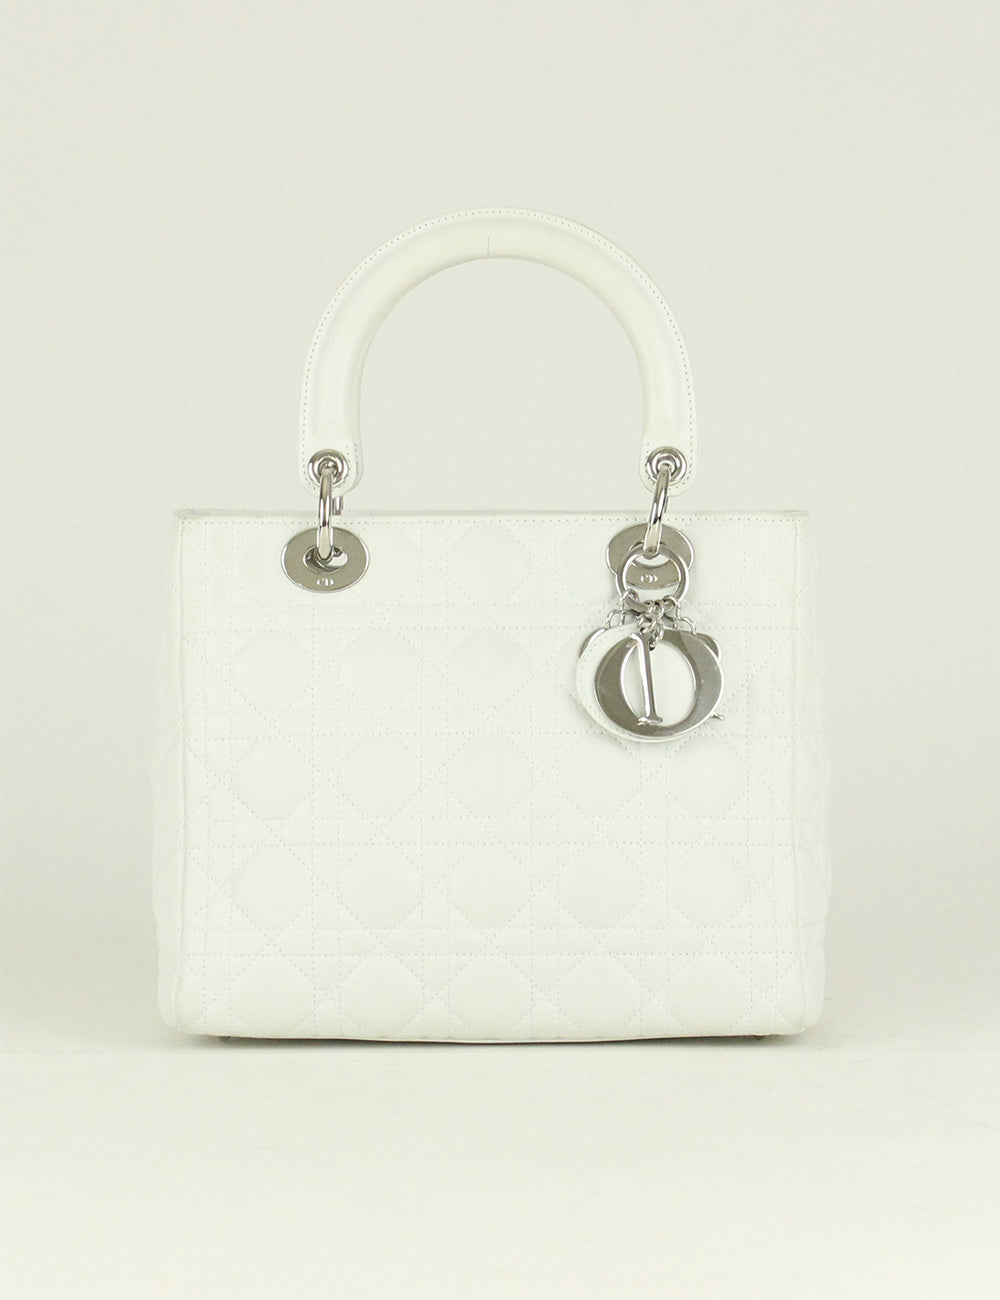 Christian Dior Lady Dior Medium Bag – Brand Shop Treasures 2c4c79c433c56